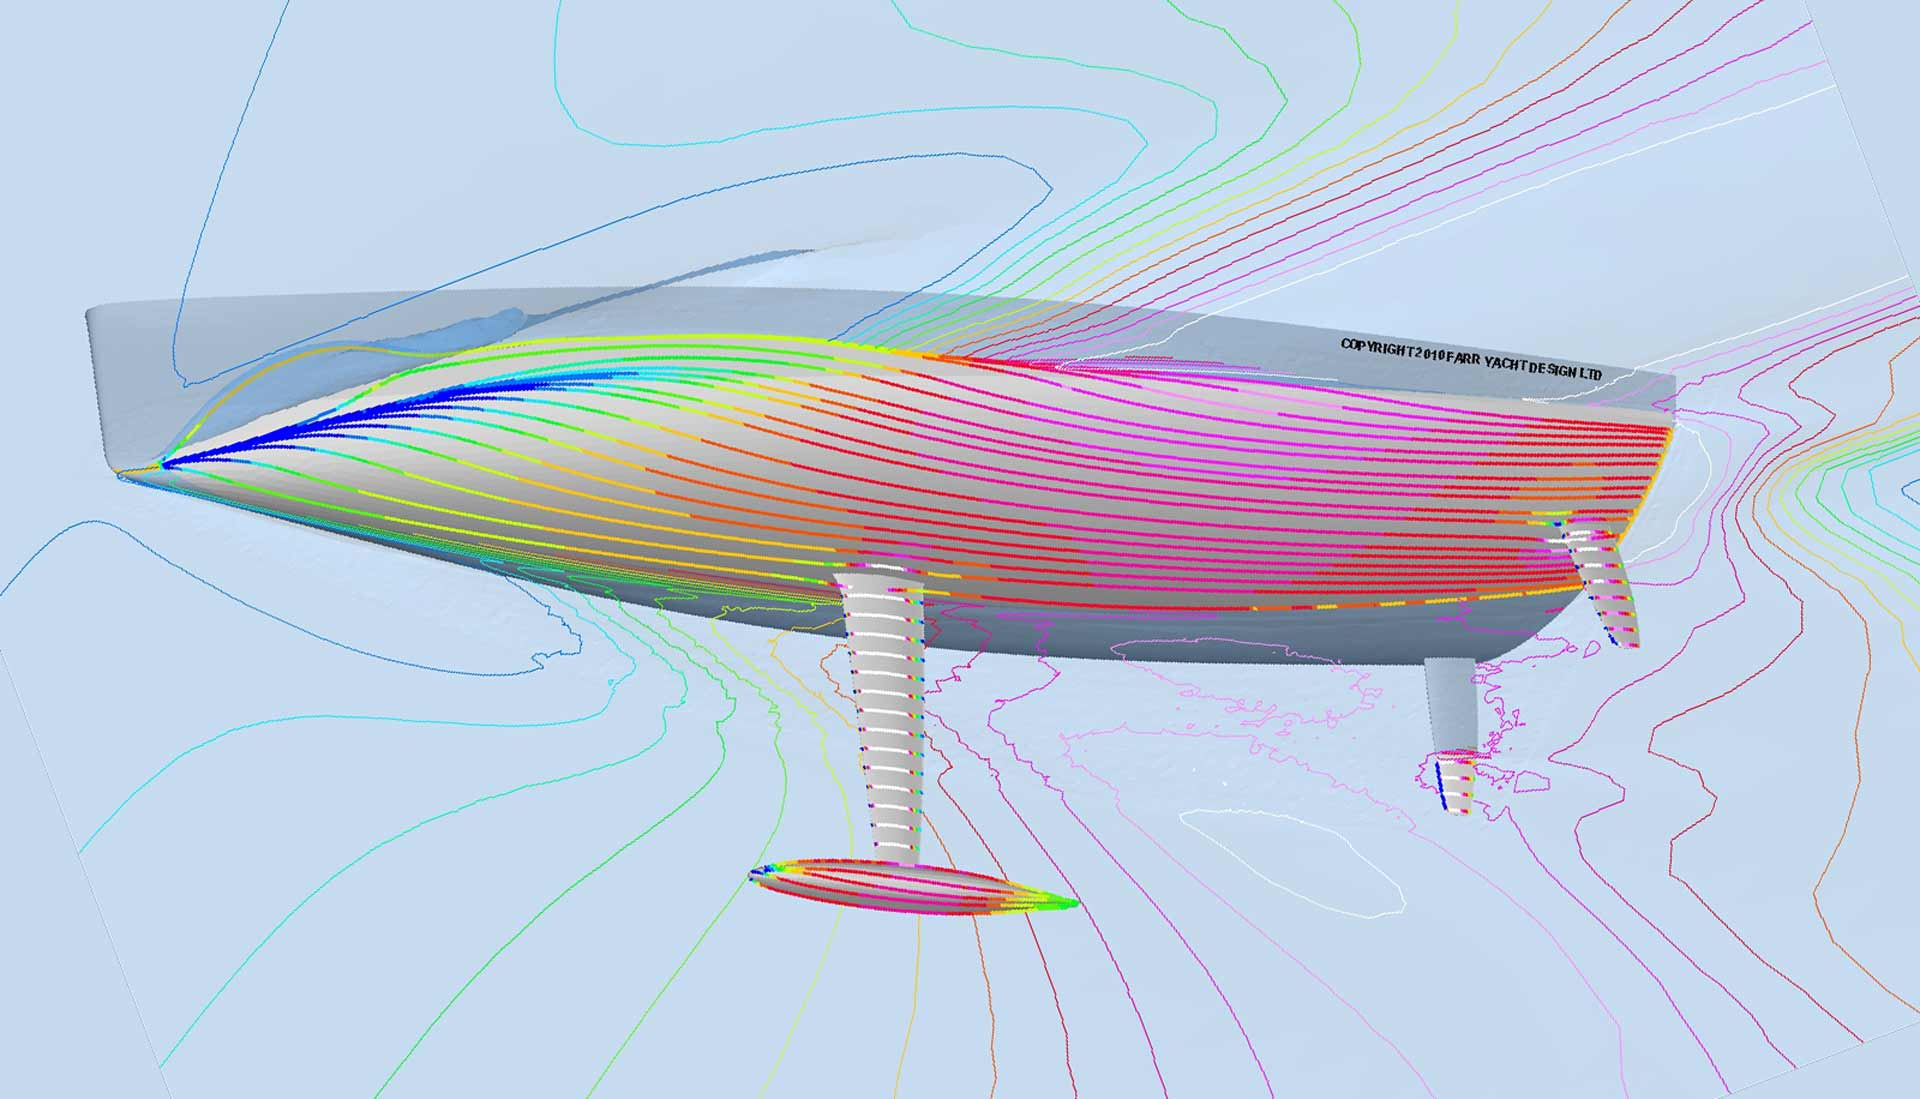 CFD is common sense - like with Farr Yacht Design